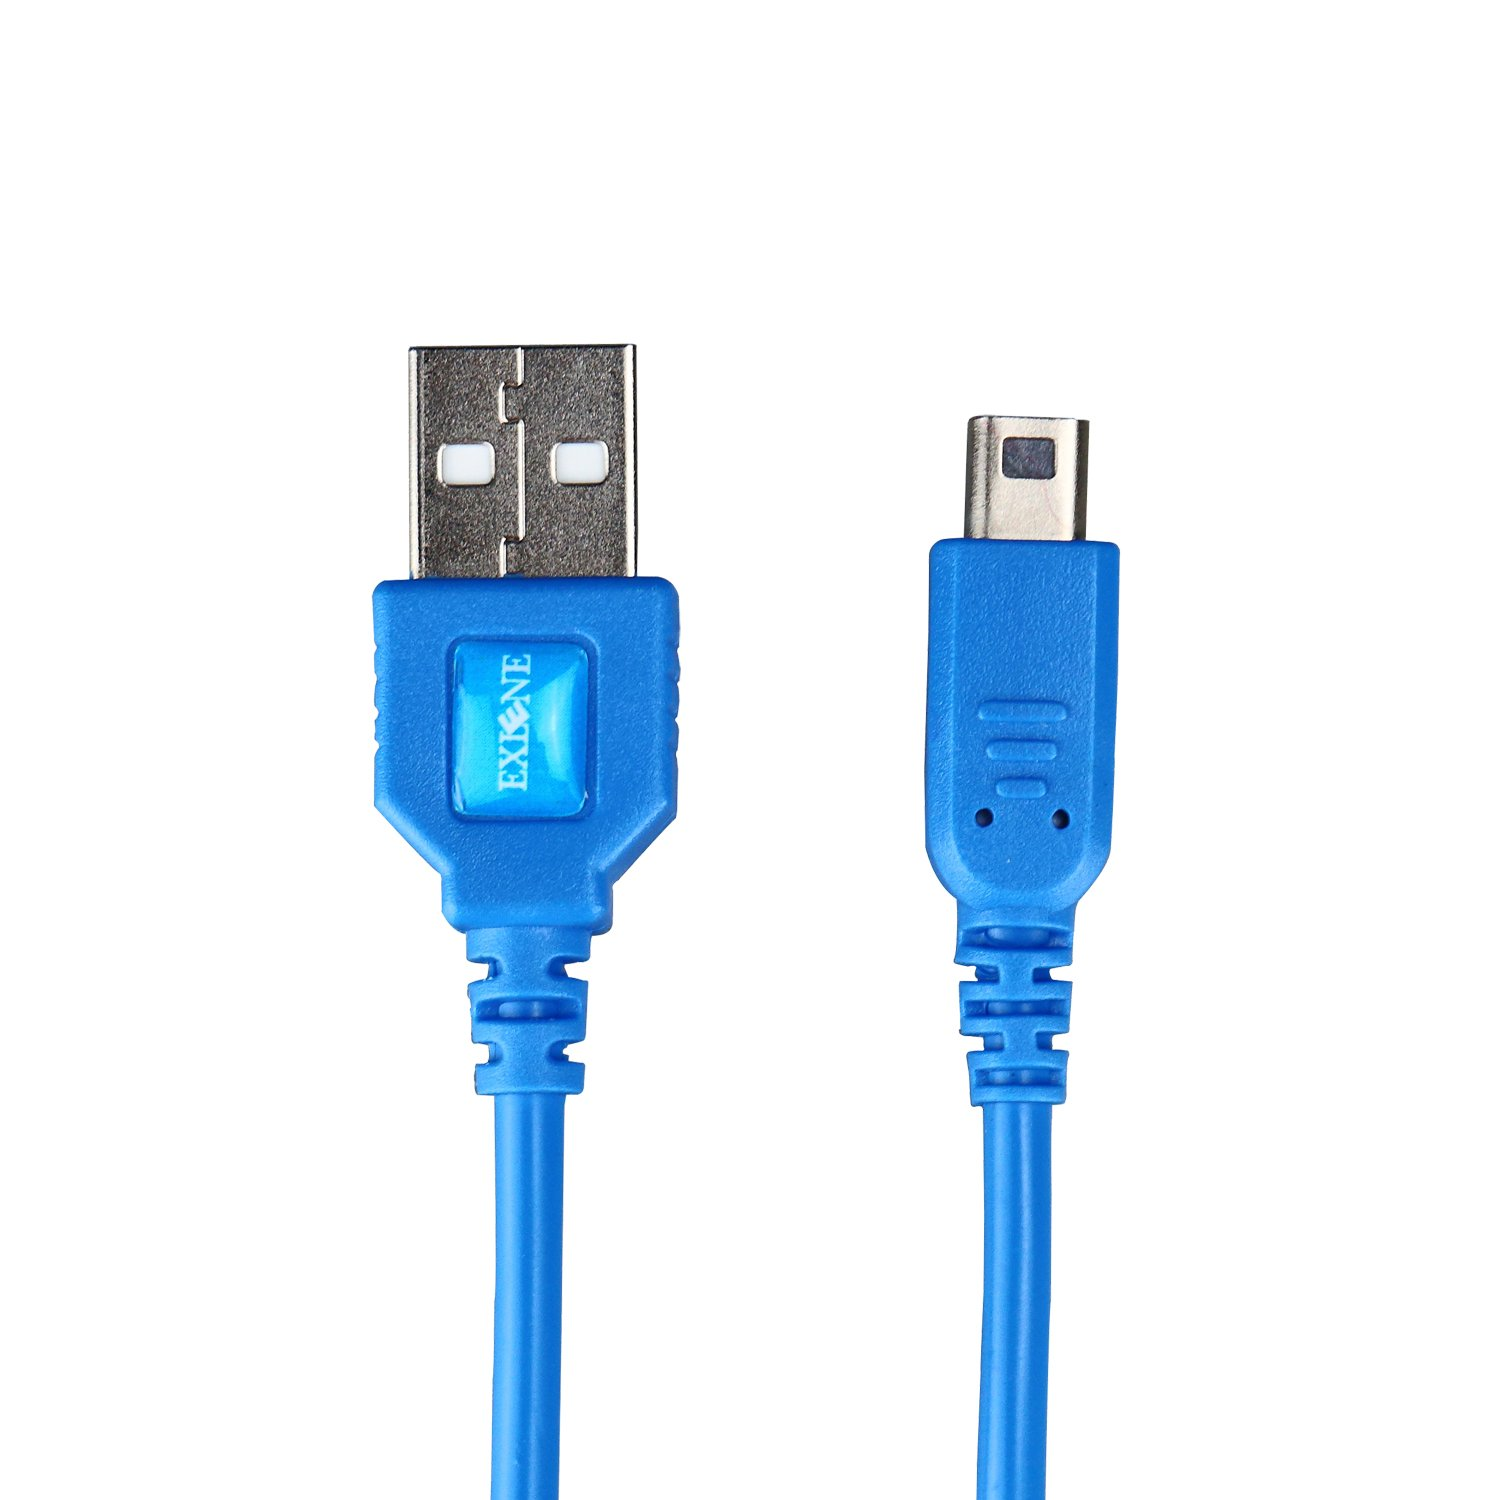 Exlene Nintendo 3DS USB Power Charge cable [Play while charging ] For Nintendo 3DS, 3DS XL, 2DS, 2DS XL LL, DSi, DSi XL (1.2M/4ft, blue)